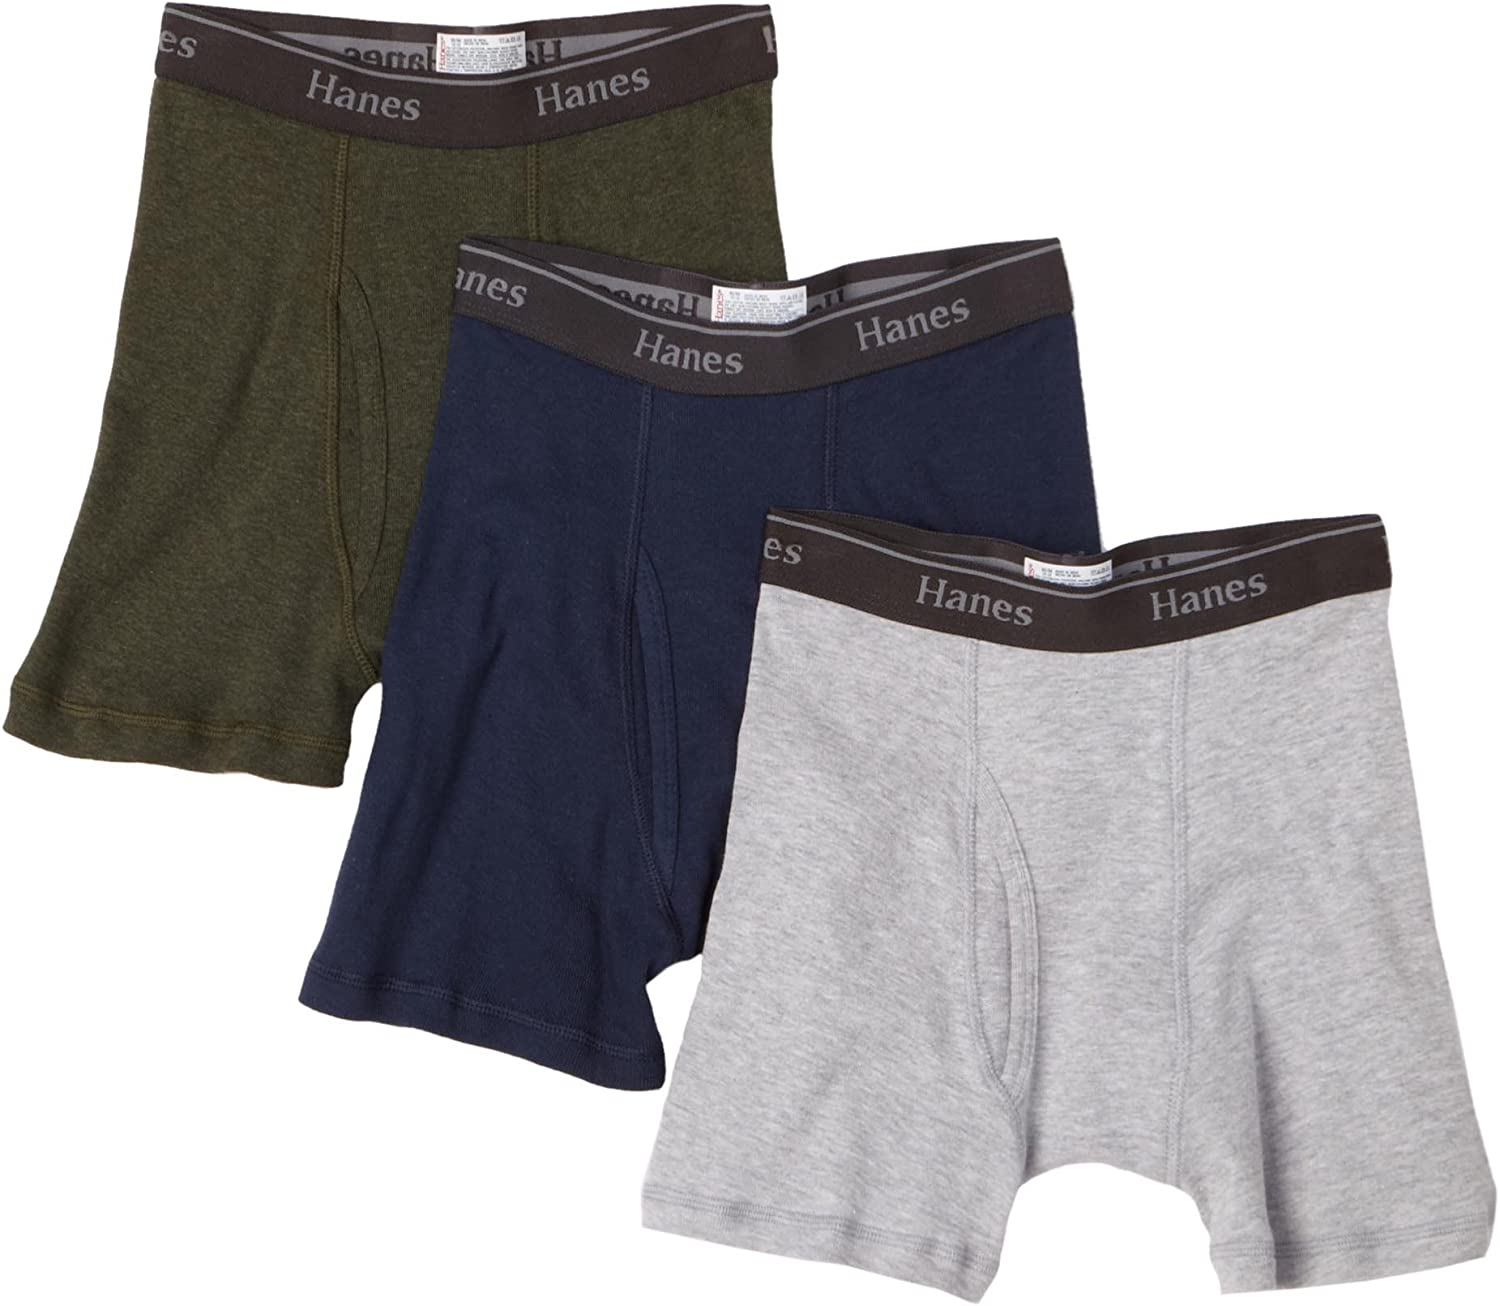 Hanes Big Boys' Hanes Classic Waistband Boxer Brief (Pack of 3)